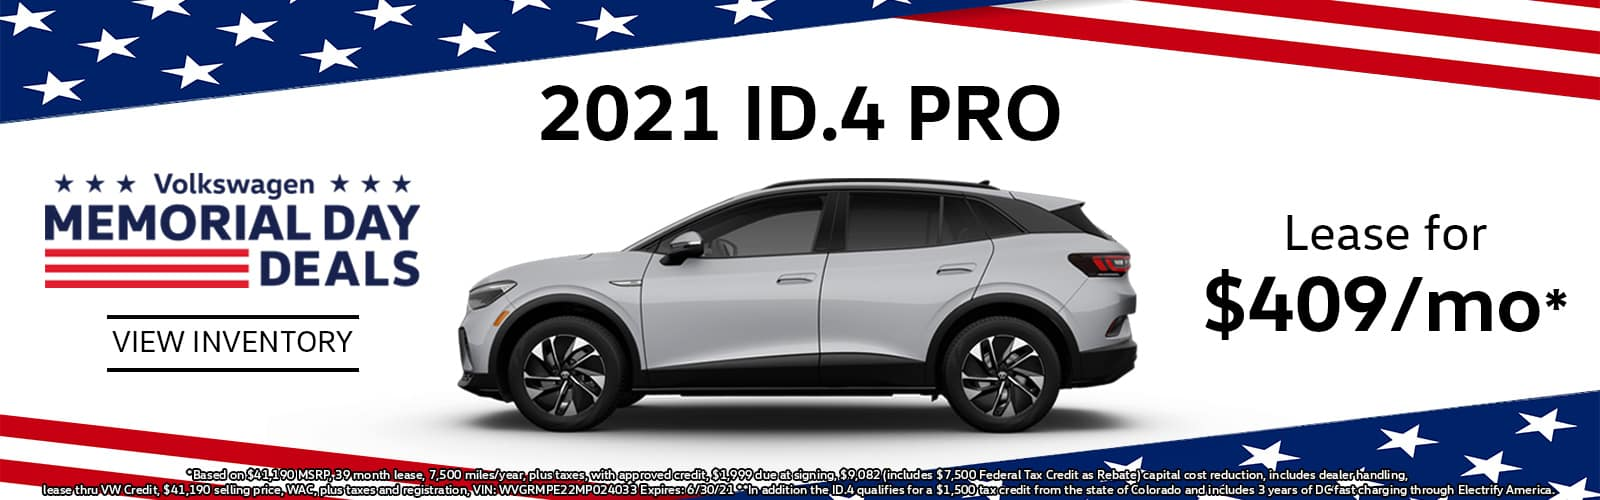 2021 VW ID4 Lease or Buy Special